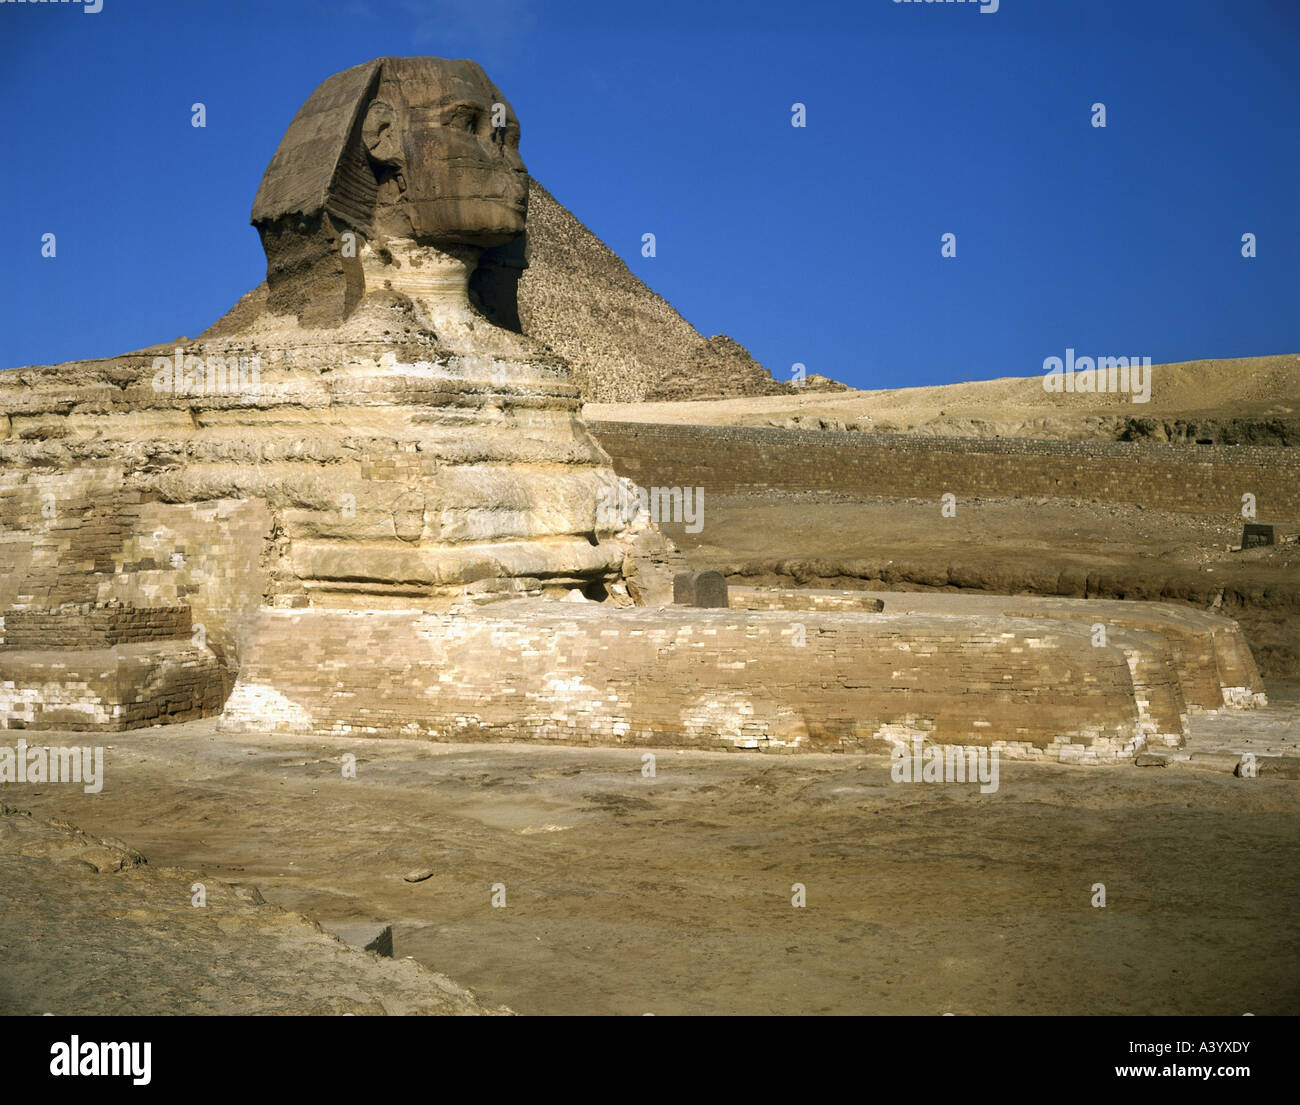 Travel Geography: Travel /geography, Egypt, Giza, Great Sphinx, Circa 2700